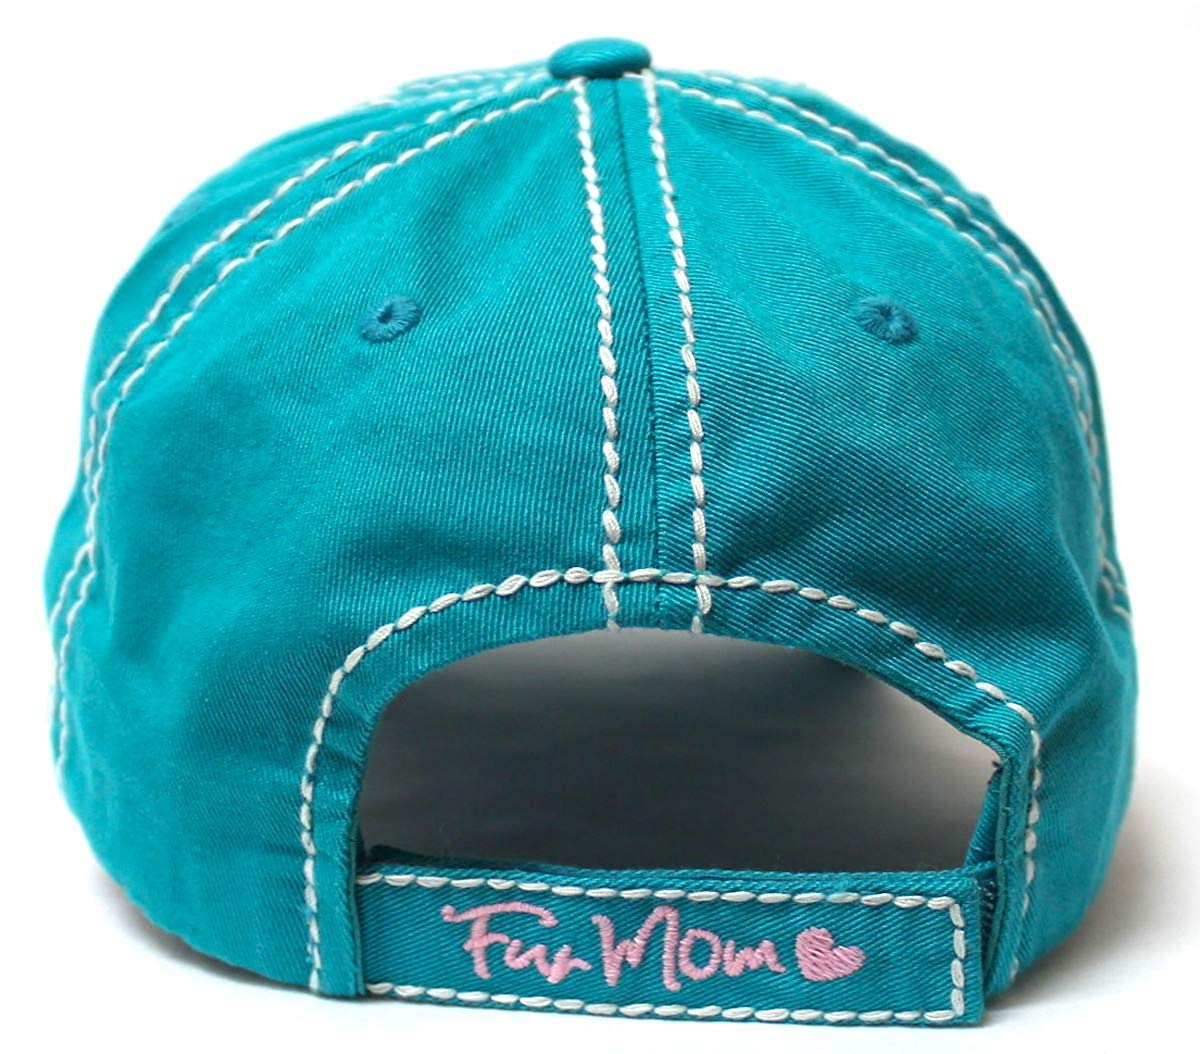 Women's Distressed Graphic Cap Fur Mom Fuzzy Dog Paw Embroidery, Turquoise - Caps 'N Vintage